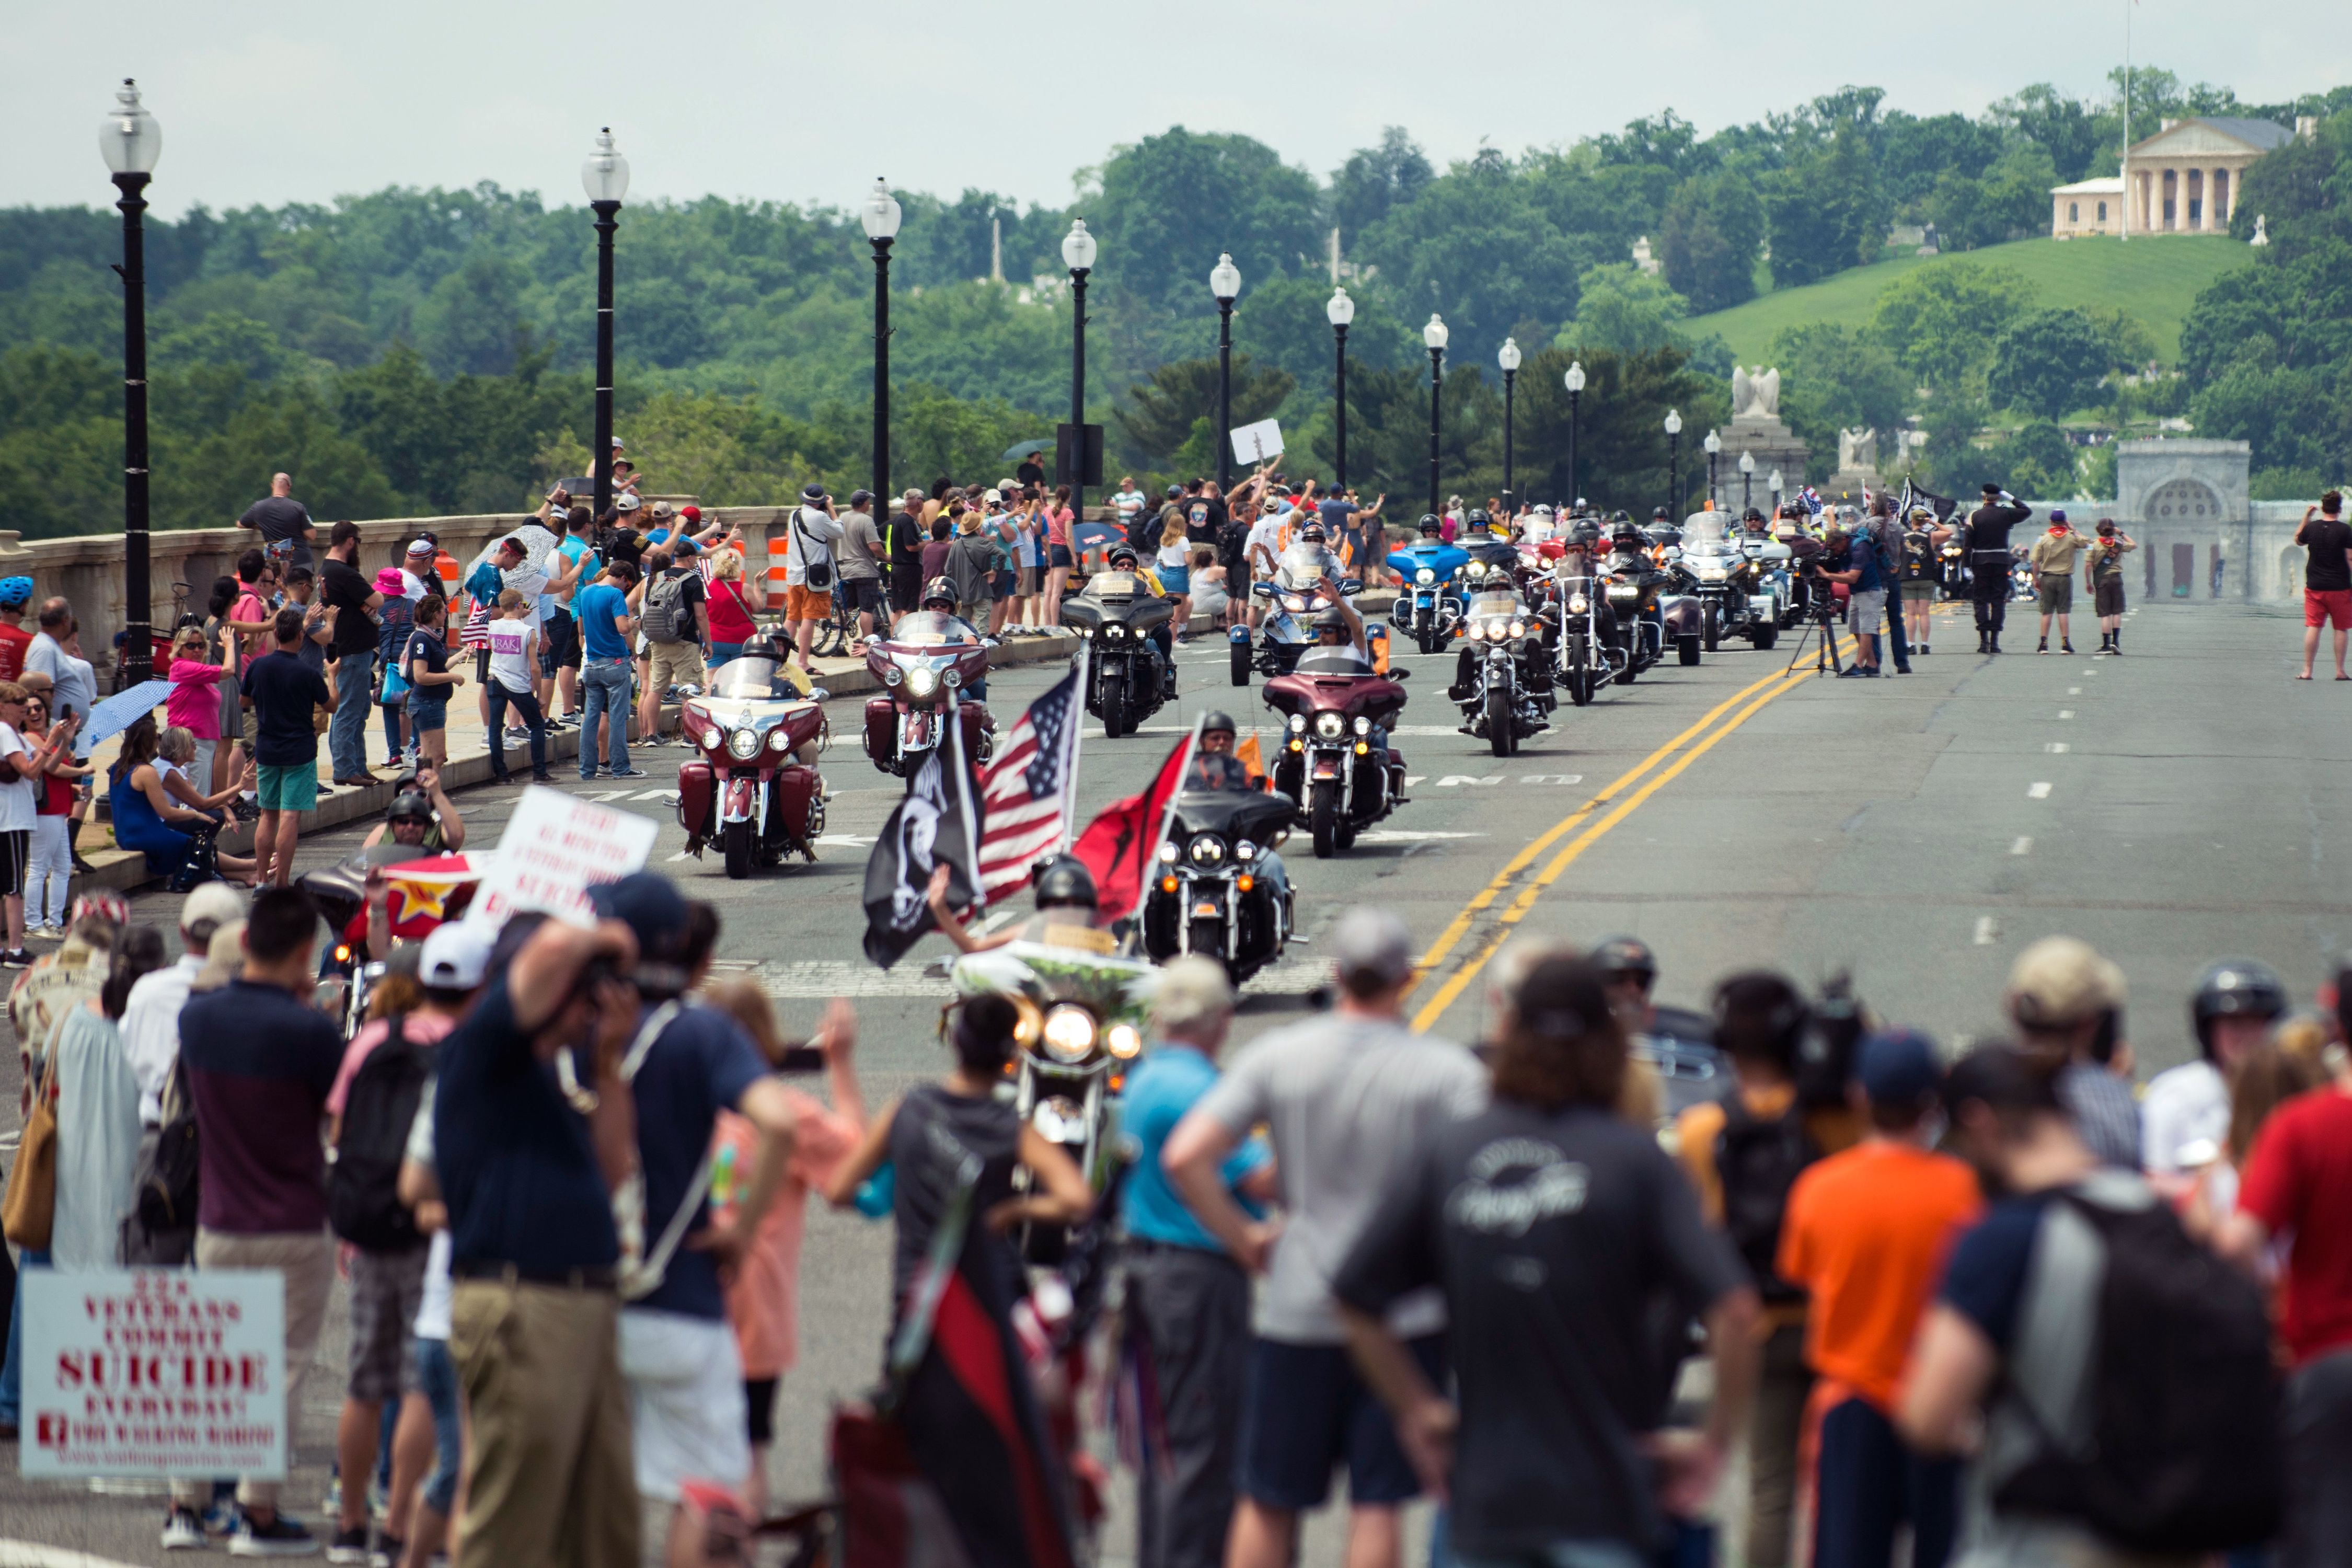 The Last Rolling Thunder 'Ride For Freedom' Memorial Day Rally Takes Place This Weekend